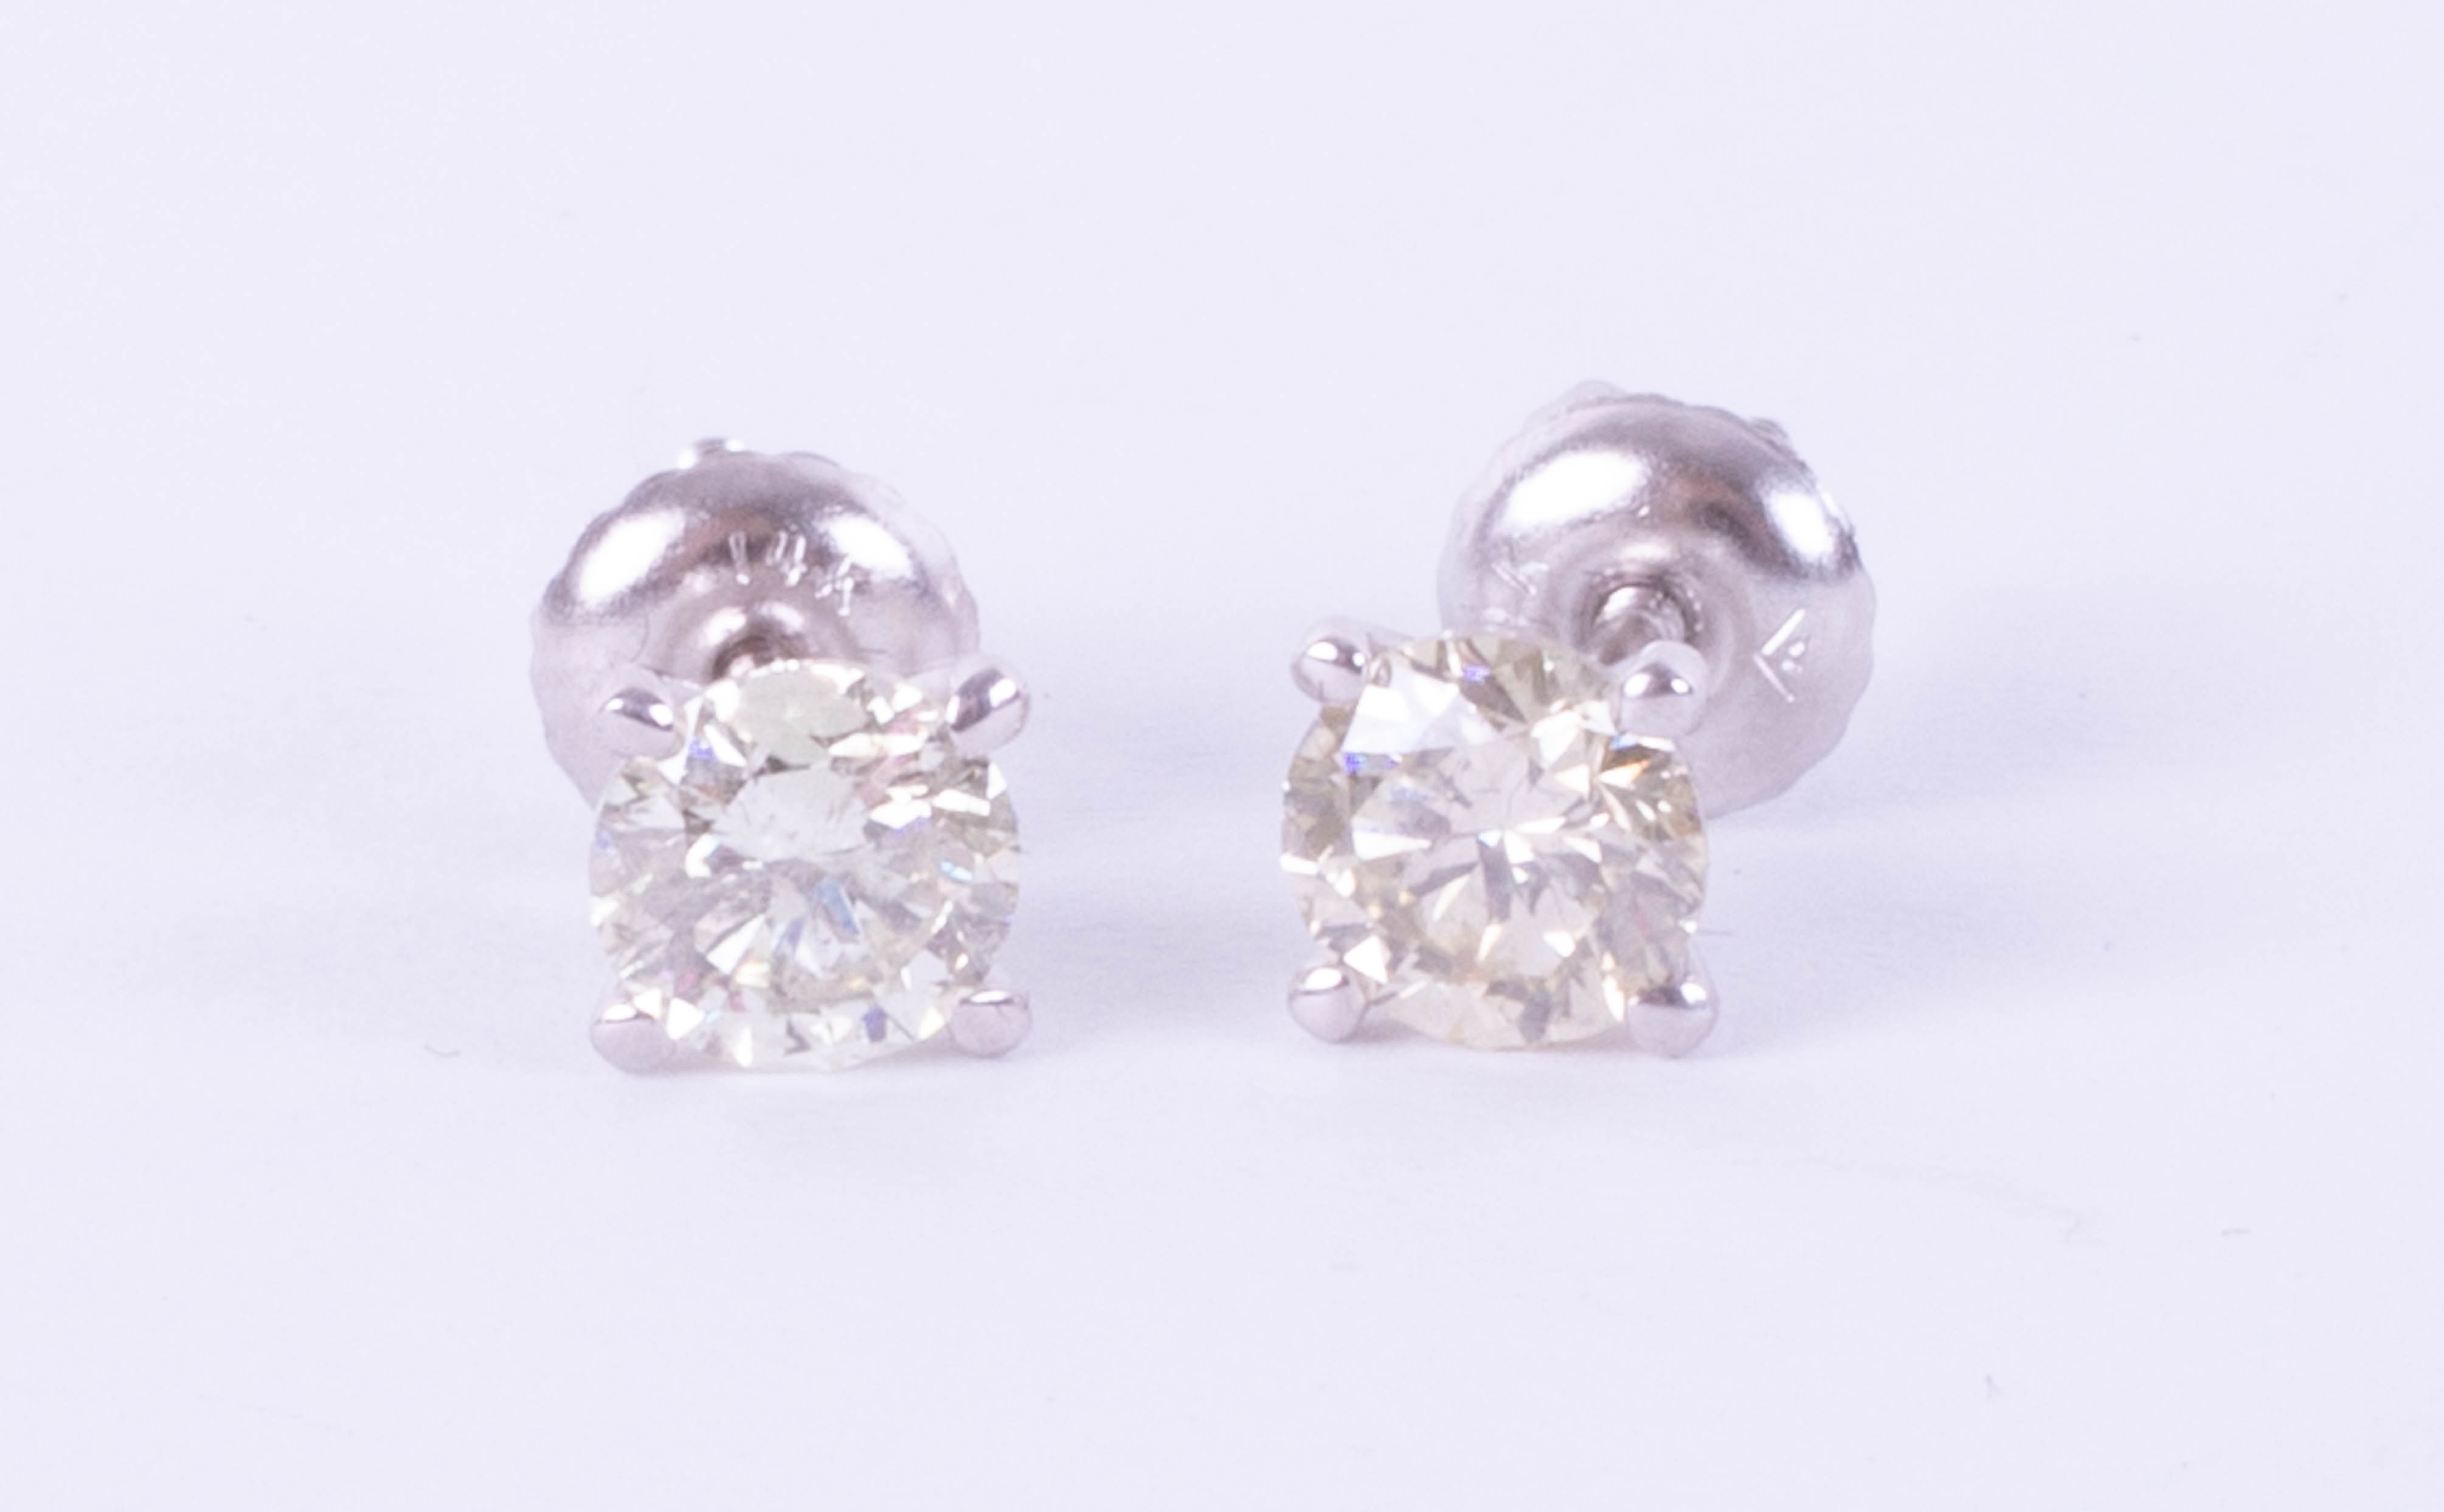 A pair of 14k white gold and diamond earrings, weight 1.09 carat, colour E-F, clarity VS1-VS2